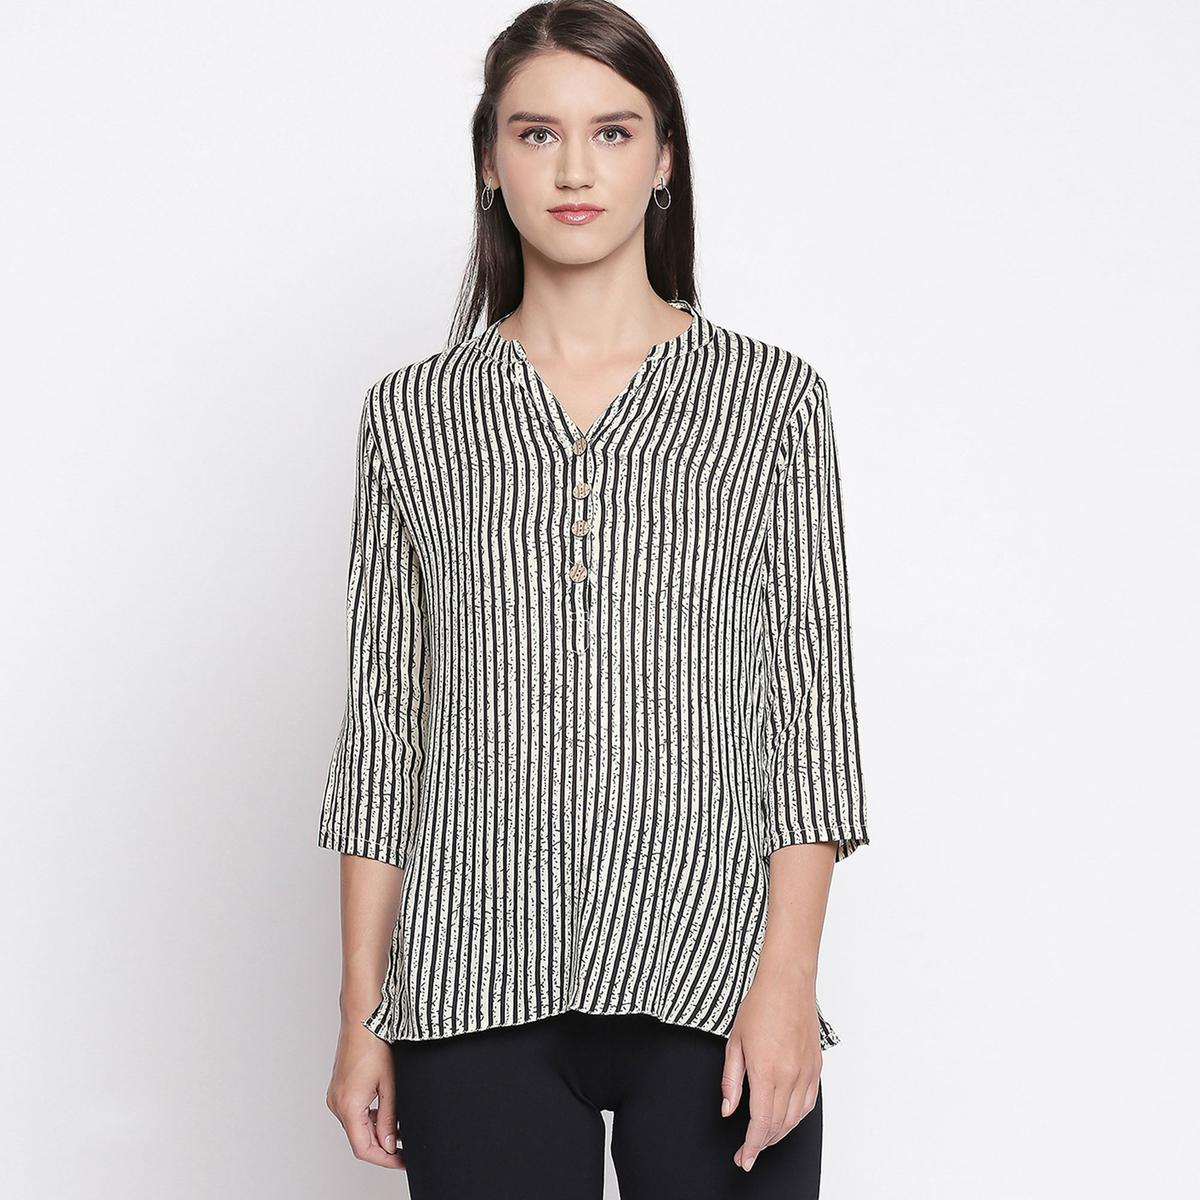 Flaunt Off White-Black Colored Casual Printed Cotton Top